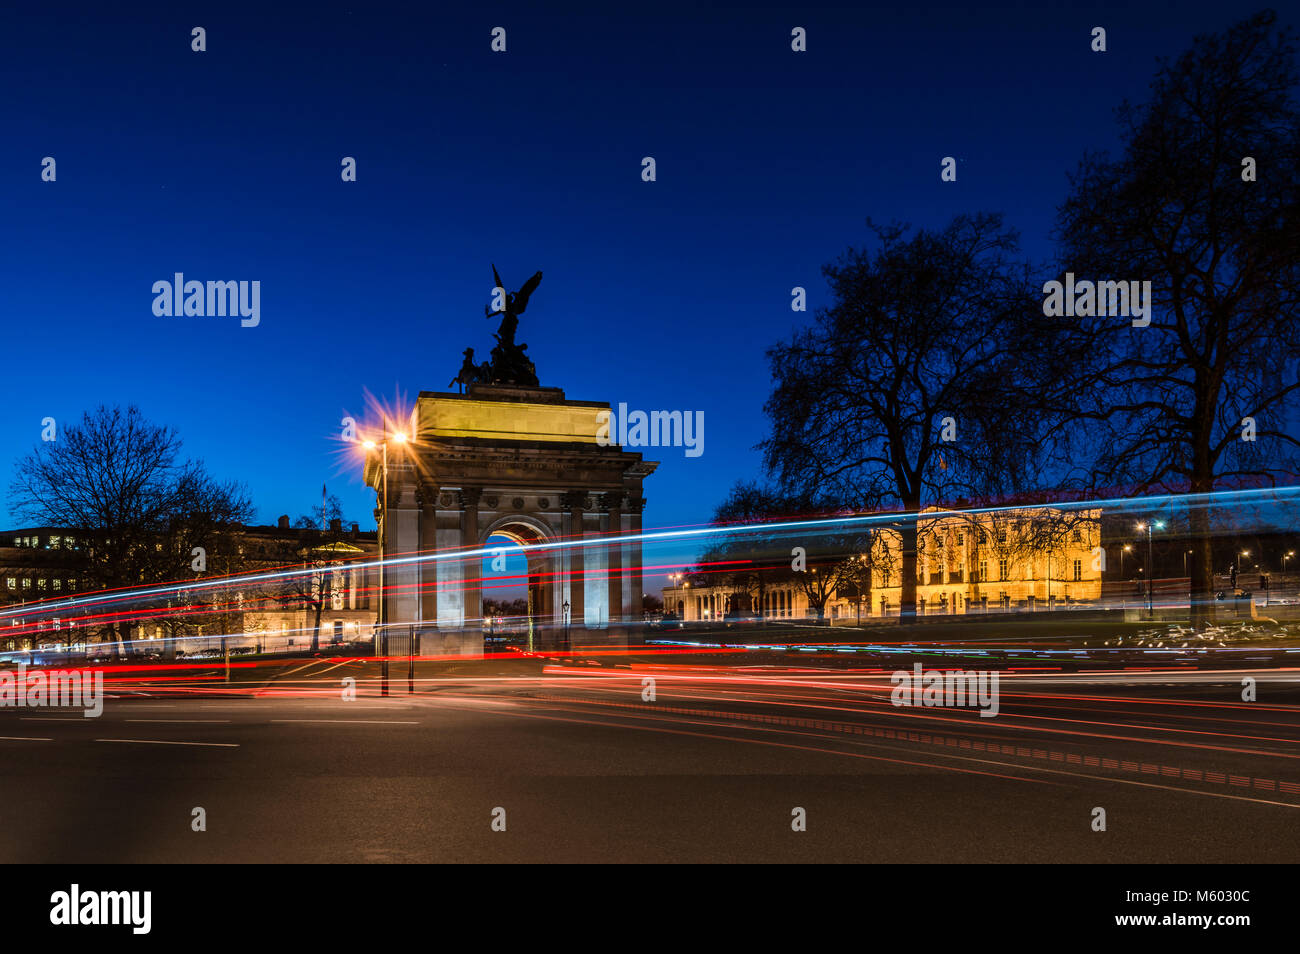 The Wellington Arch at Night, Hyde Park Corner, London, UK - Stock Image